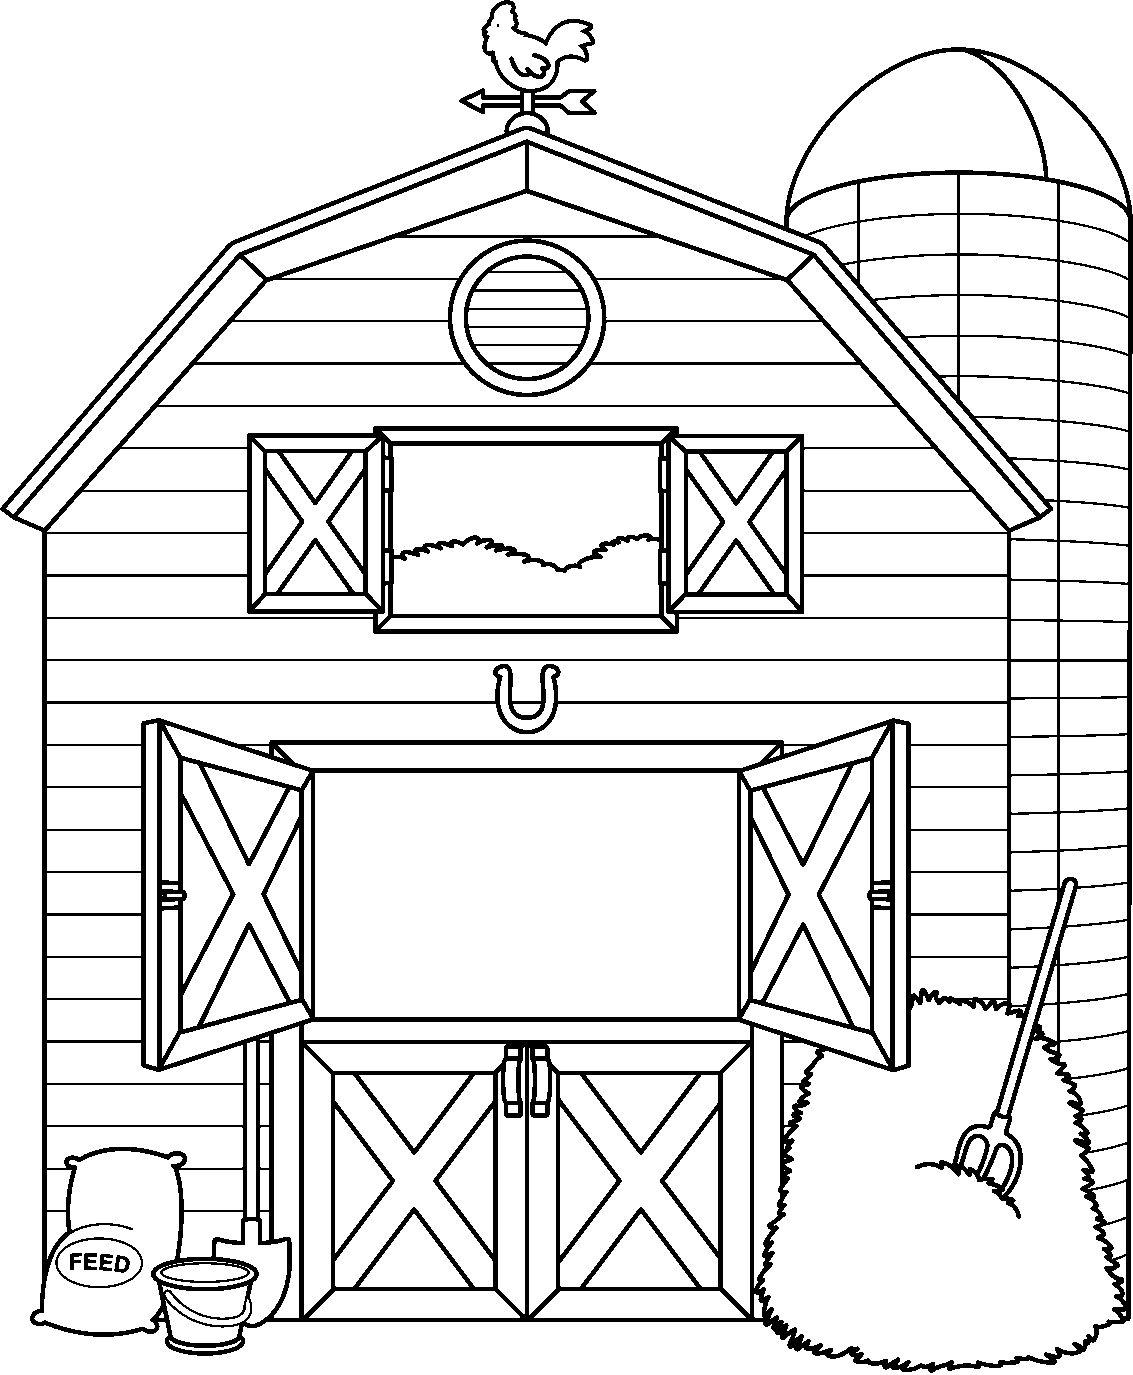 Farm Clipart Black And White : clipart, black, white, Clipart, Black, White, Coloring, Pages,, Animal, Quilt